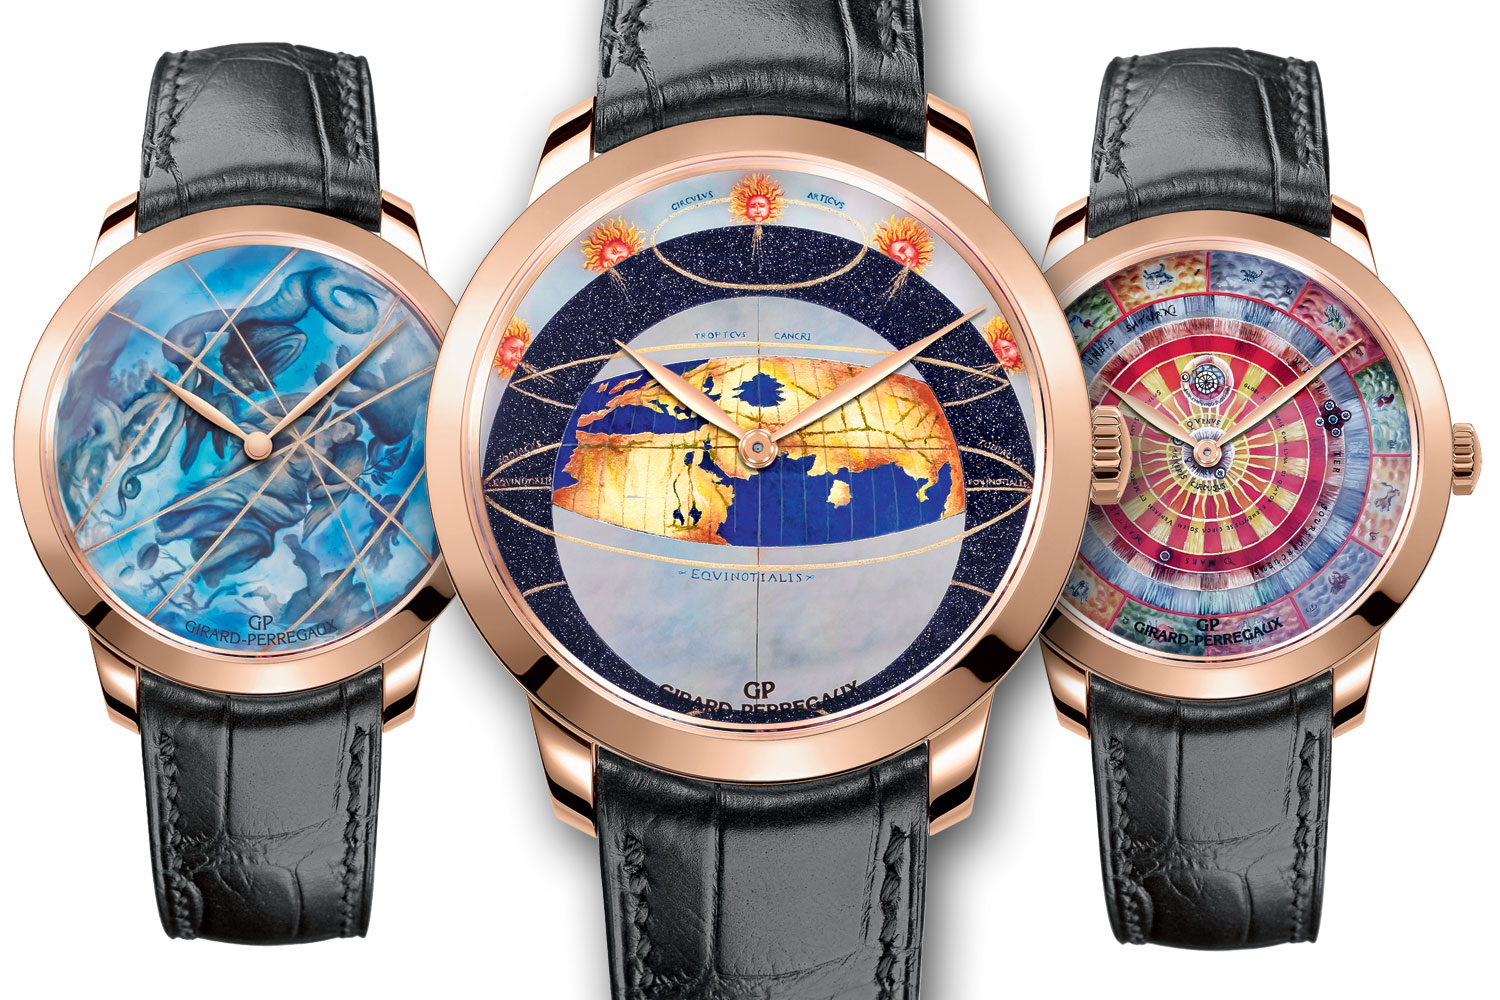 The New Girard-Perregaux Chamber of Wonders Collection